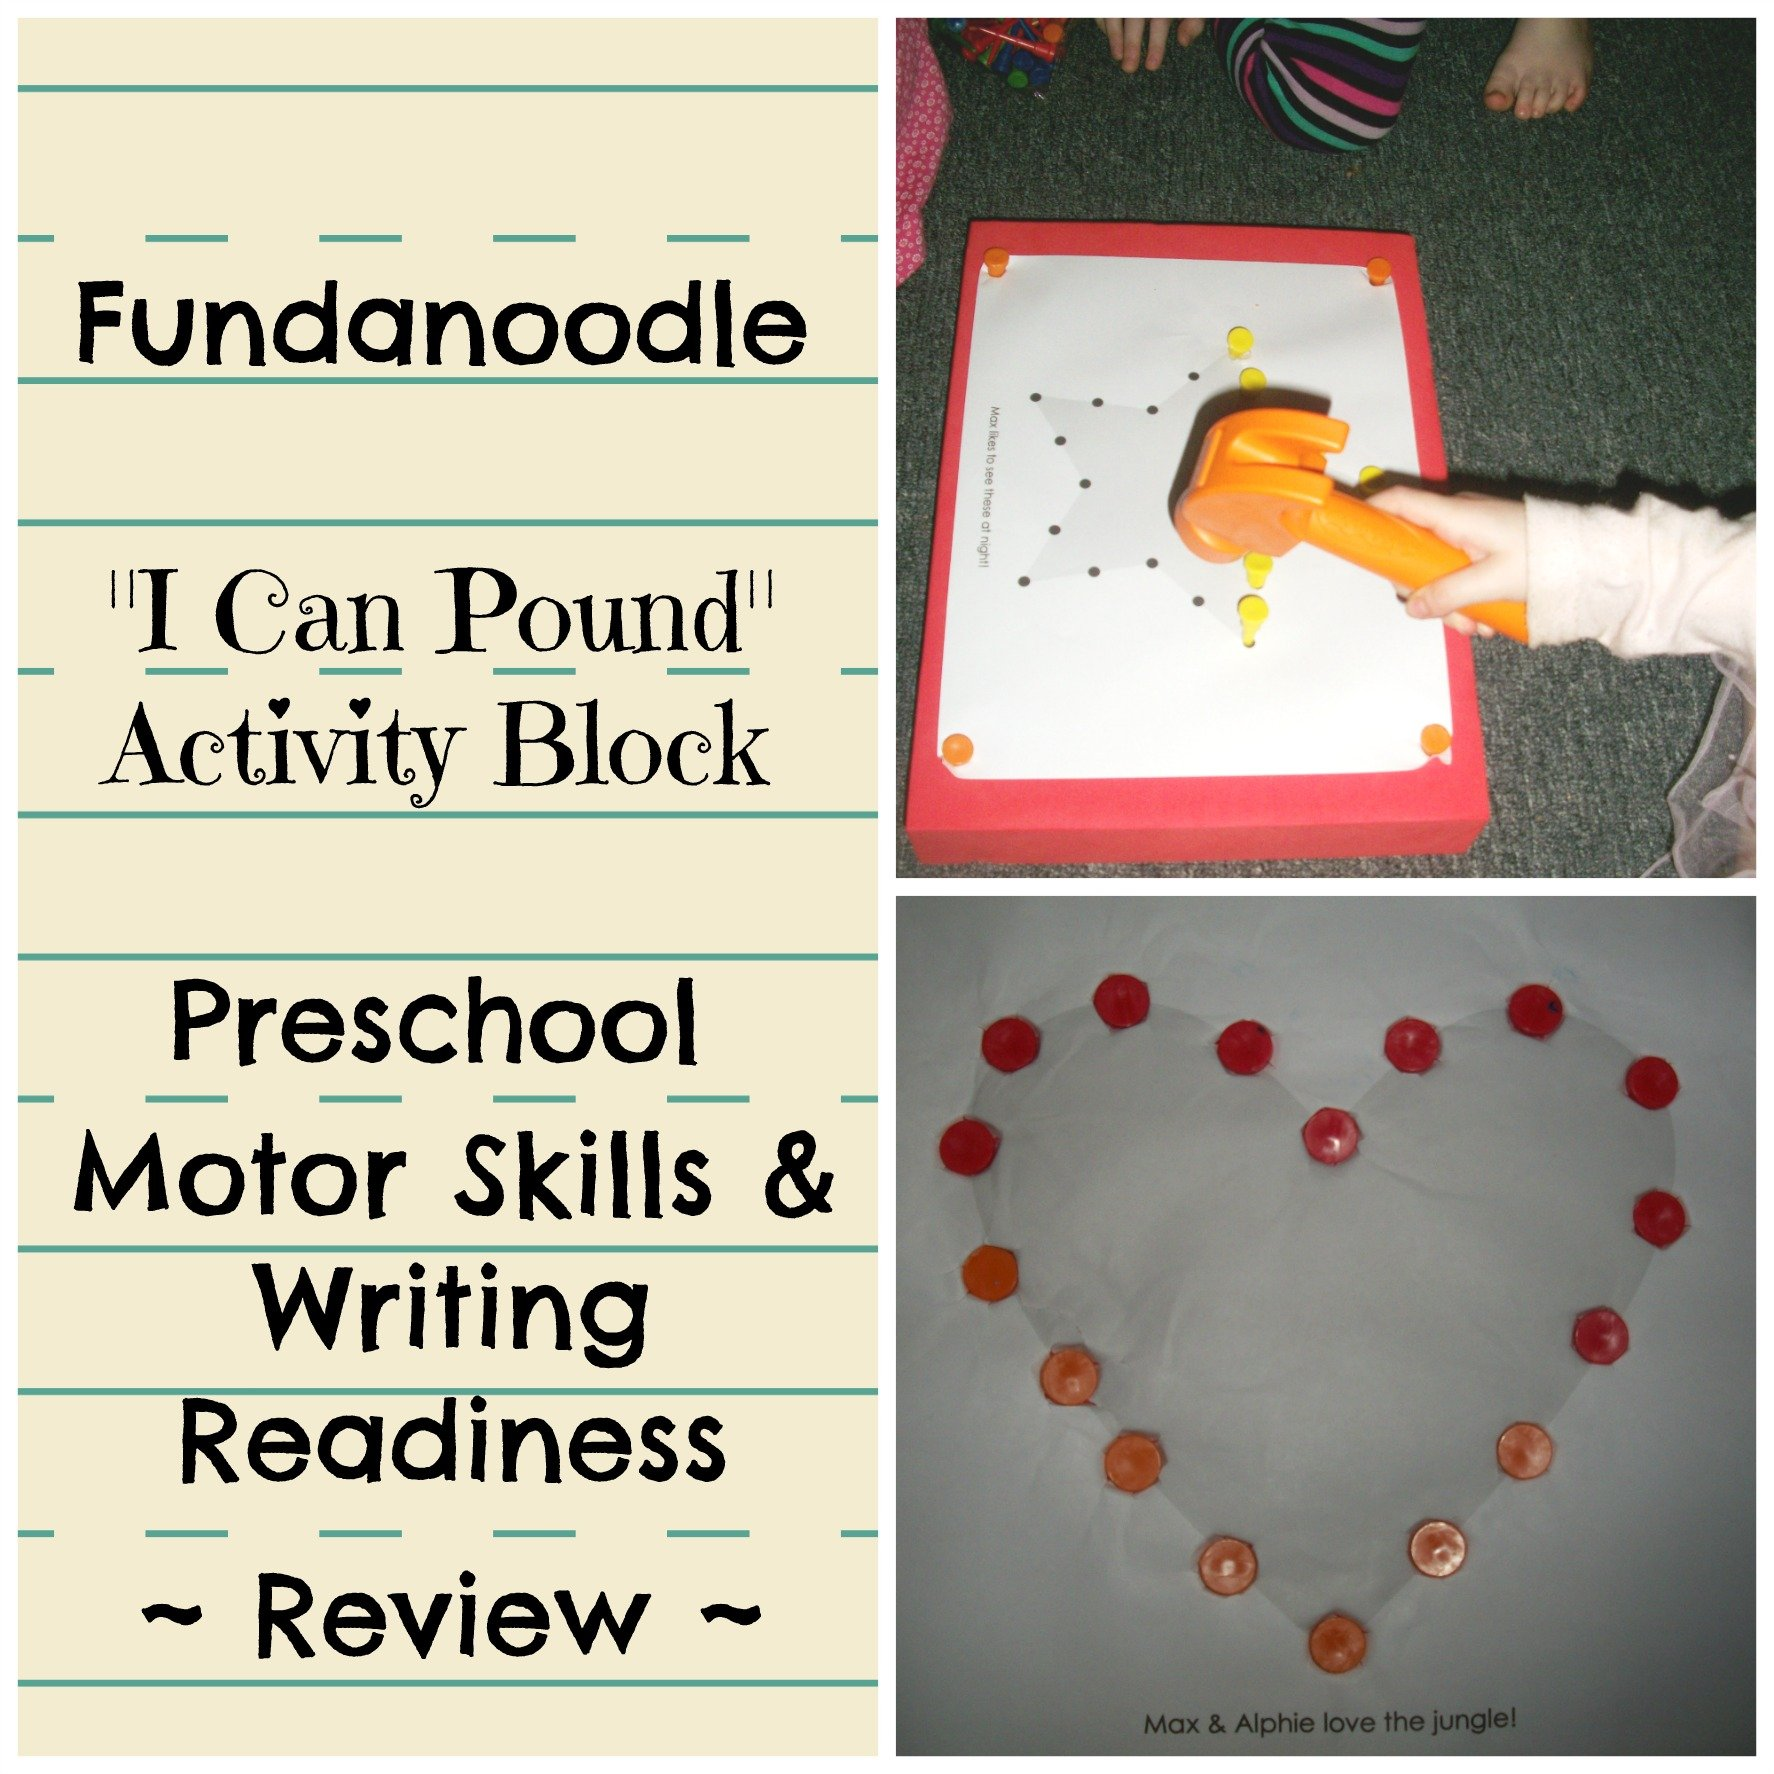 Schoolhouse Crew Review Preschool Writing Readiness Skills With Fundanoodle